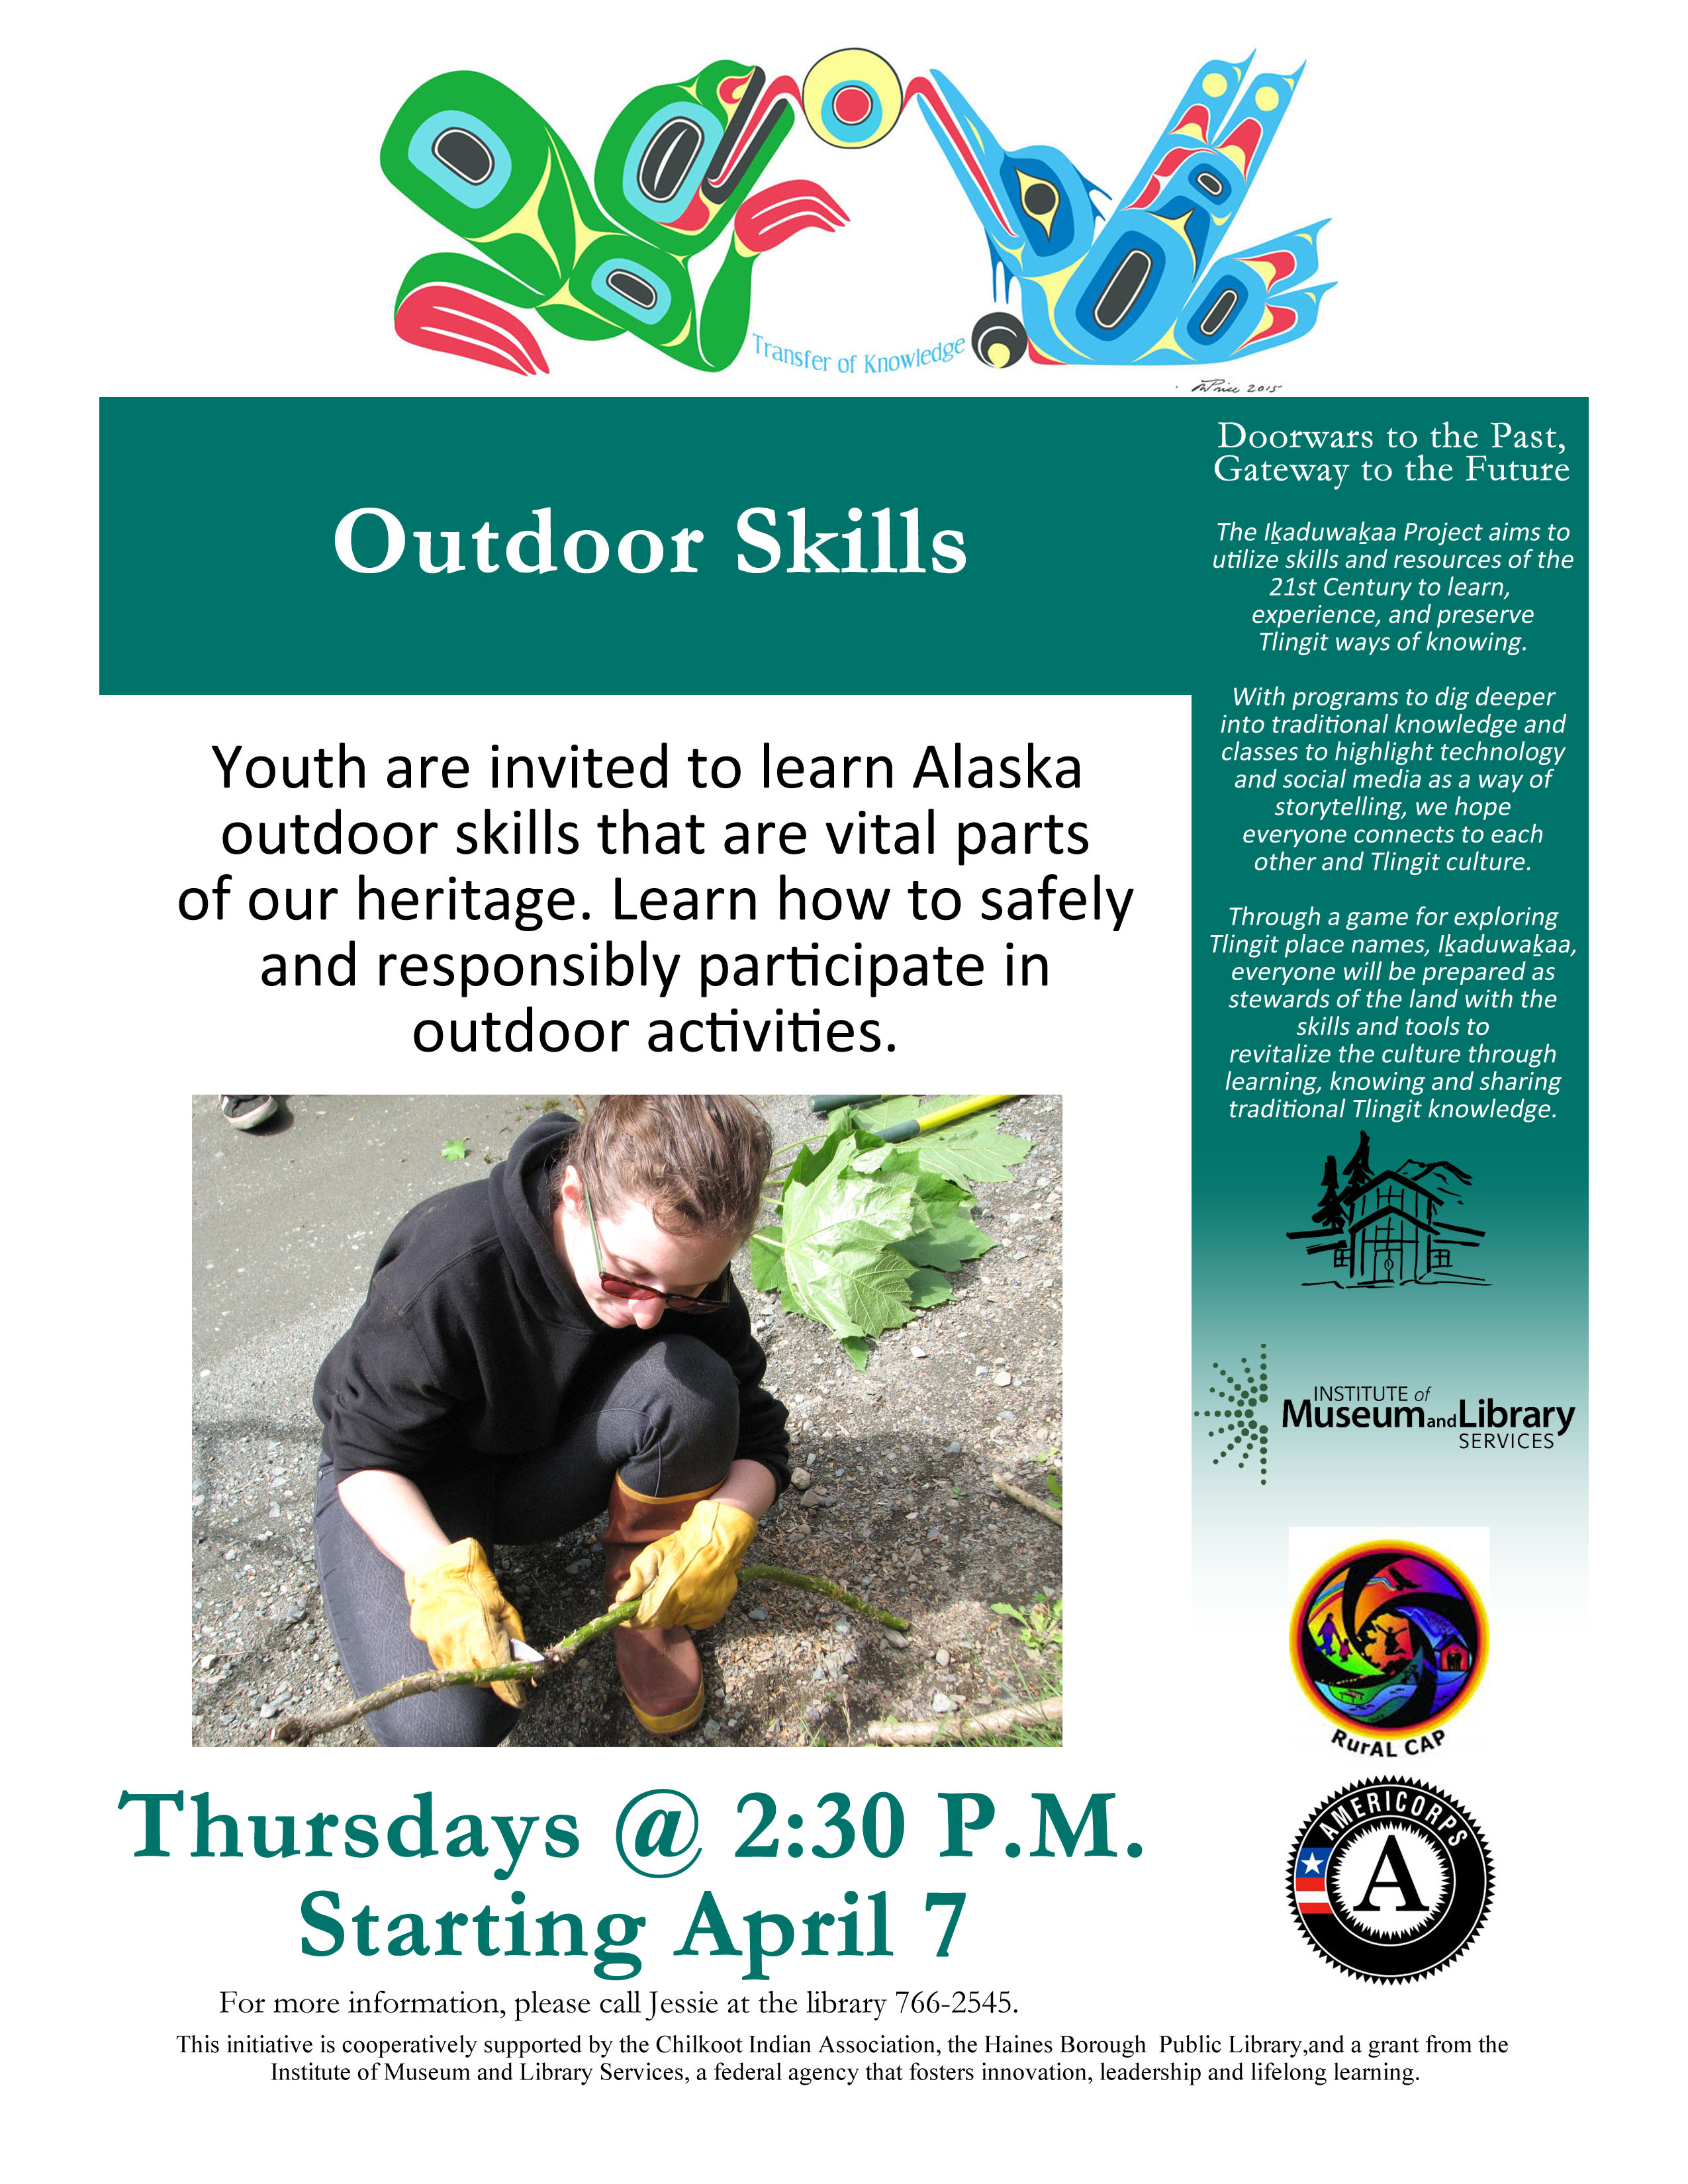 Outdoor Skills for Youth | Haines Borough Public Library